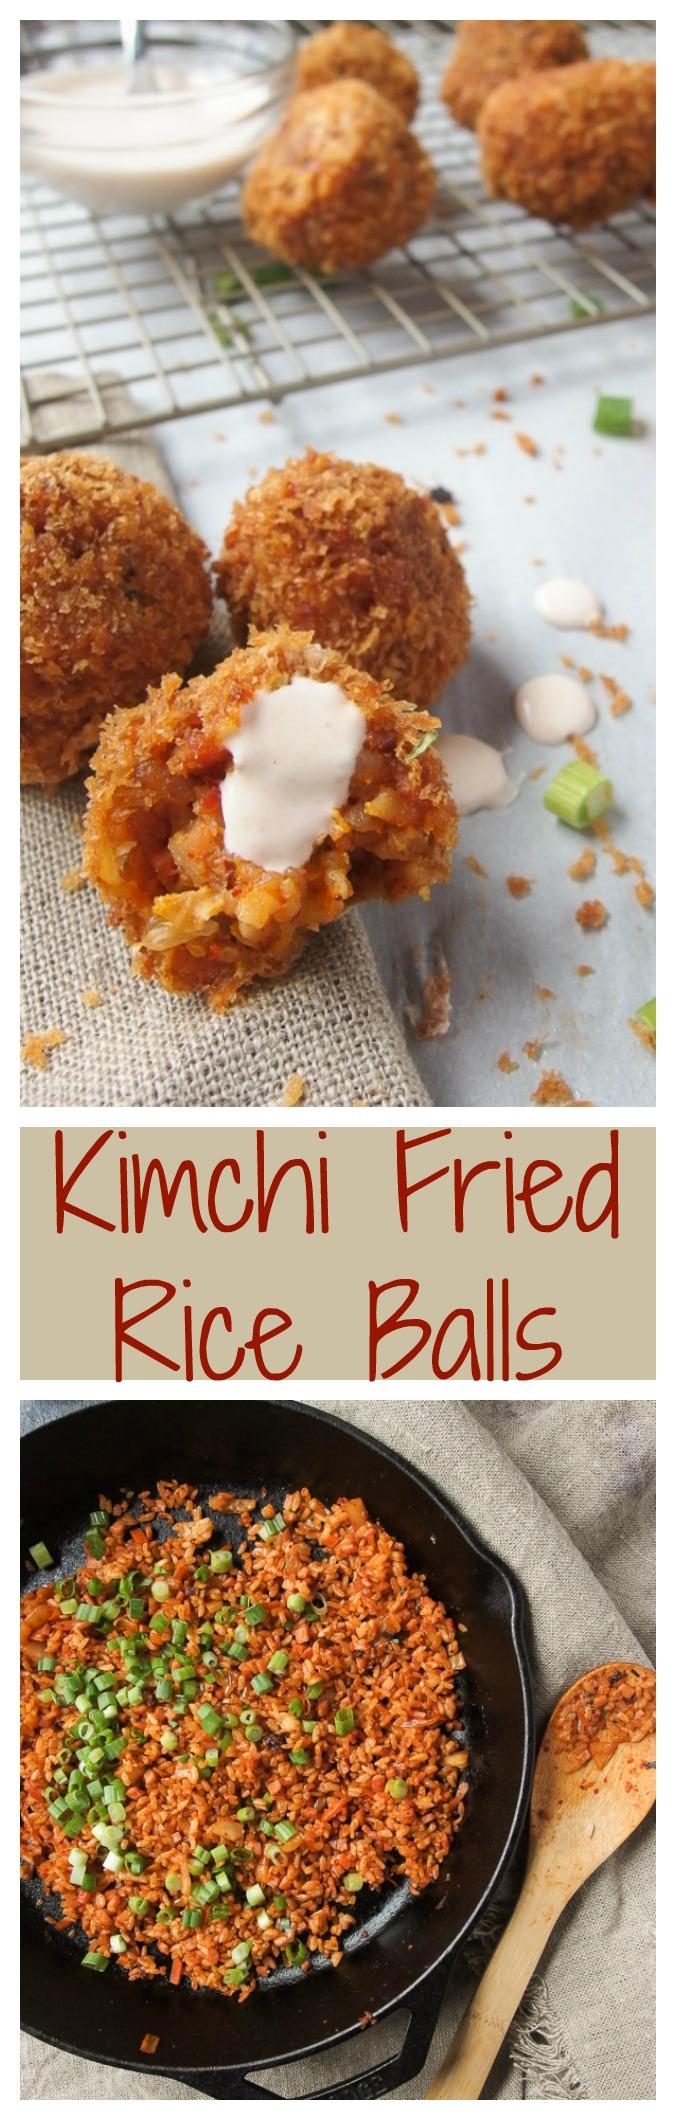 Kimchi Fried Rice Balls with Sriracha Crema are crunchy, spicy, and savory!